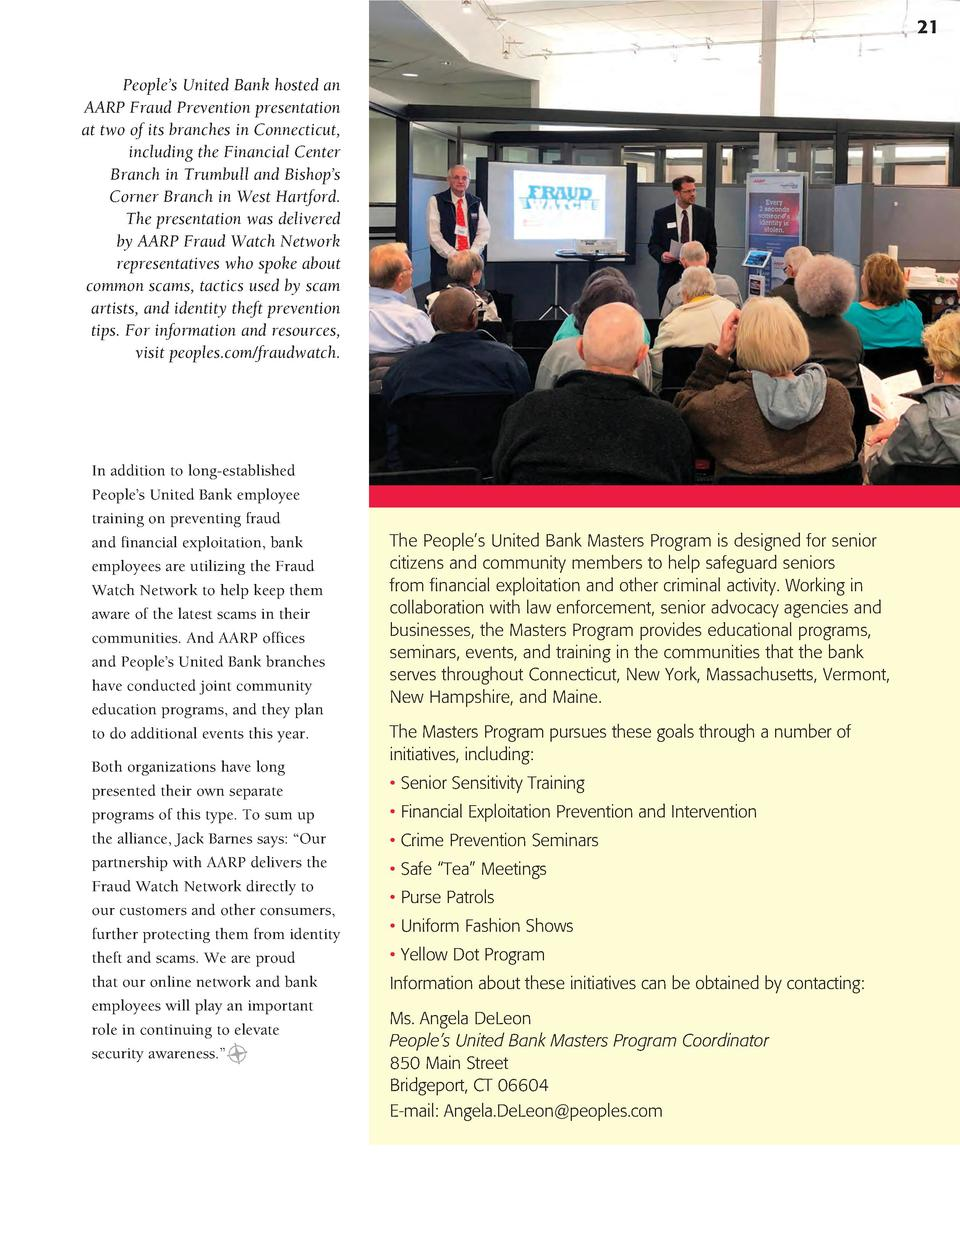 21 People   s United Bank hosted an AARP Fraud Prevention presentation at two of its branches in Connecticut, including th...